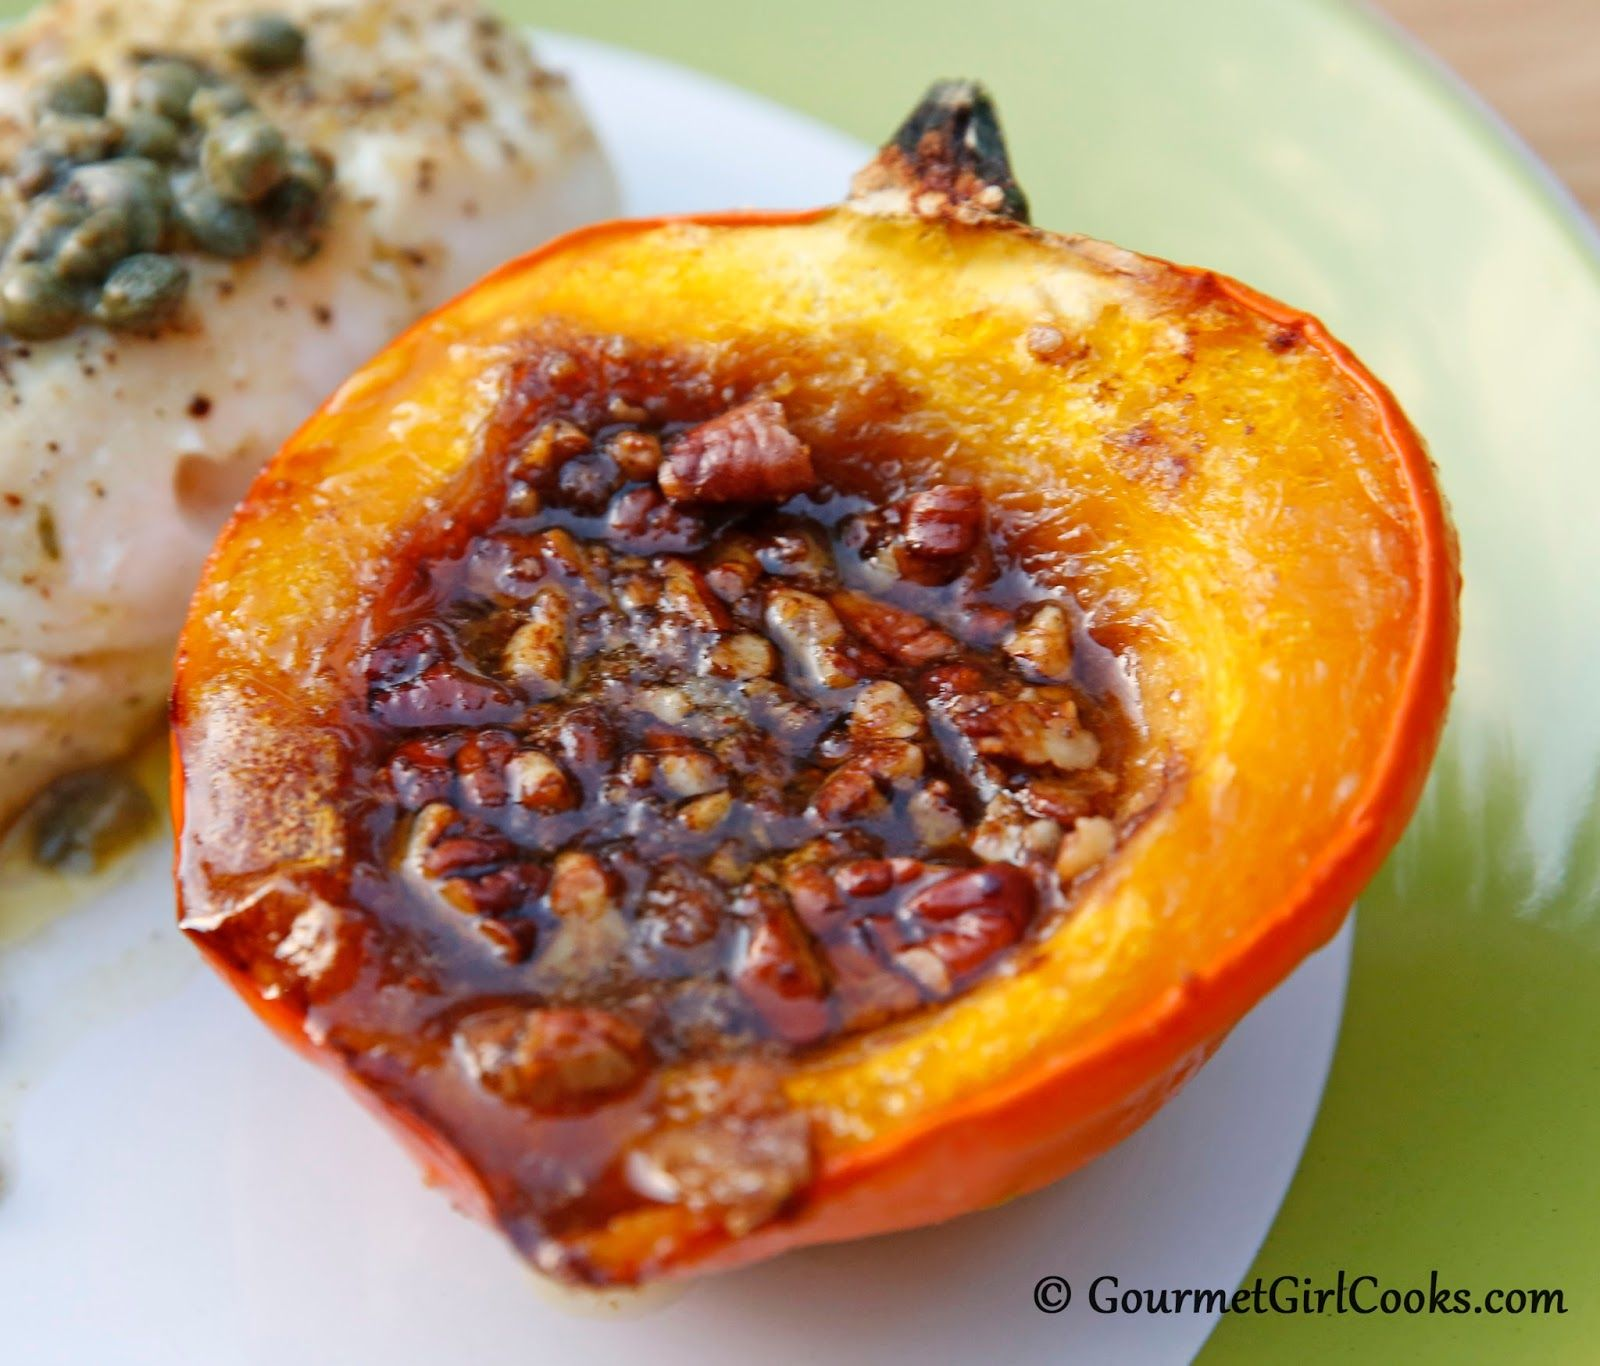 Baked Acorn Squash W Butter Brown Sugar Pecans Served W Pan